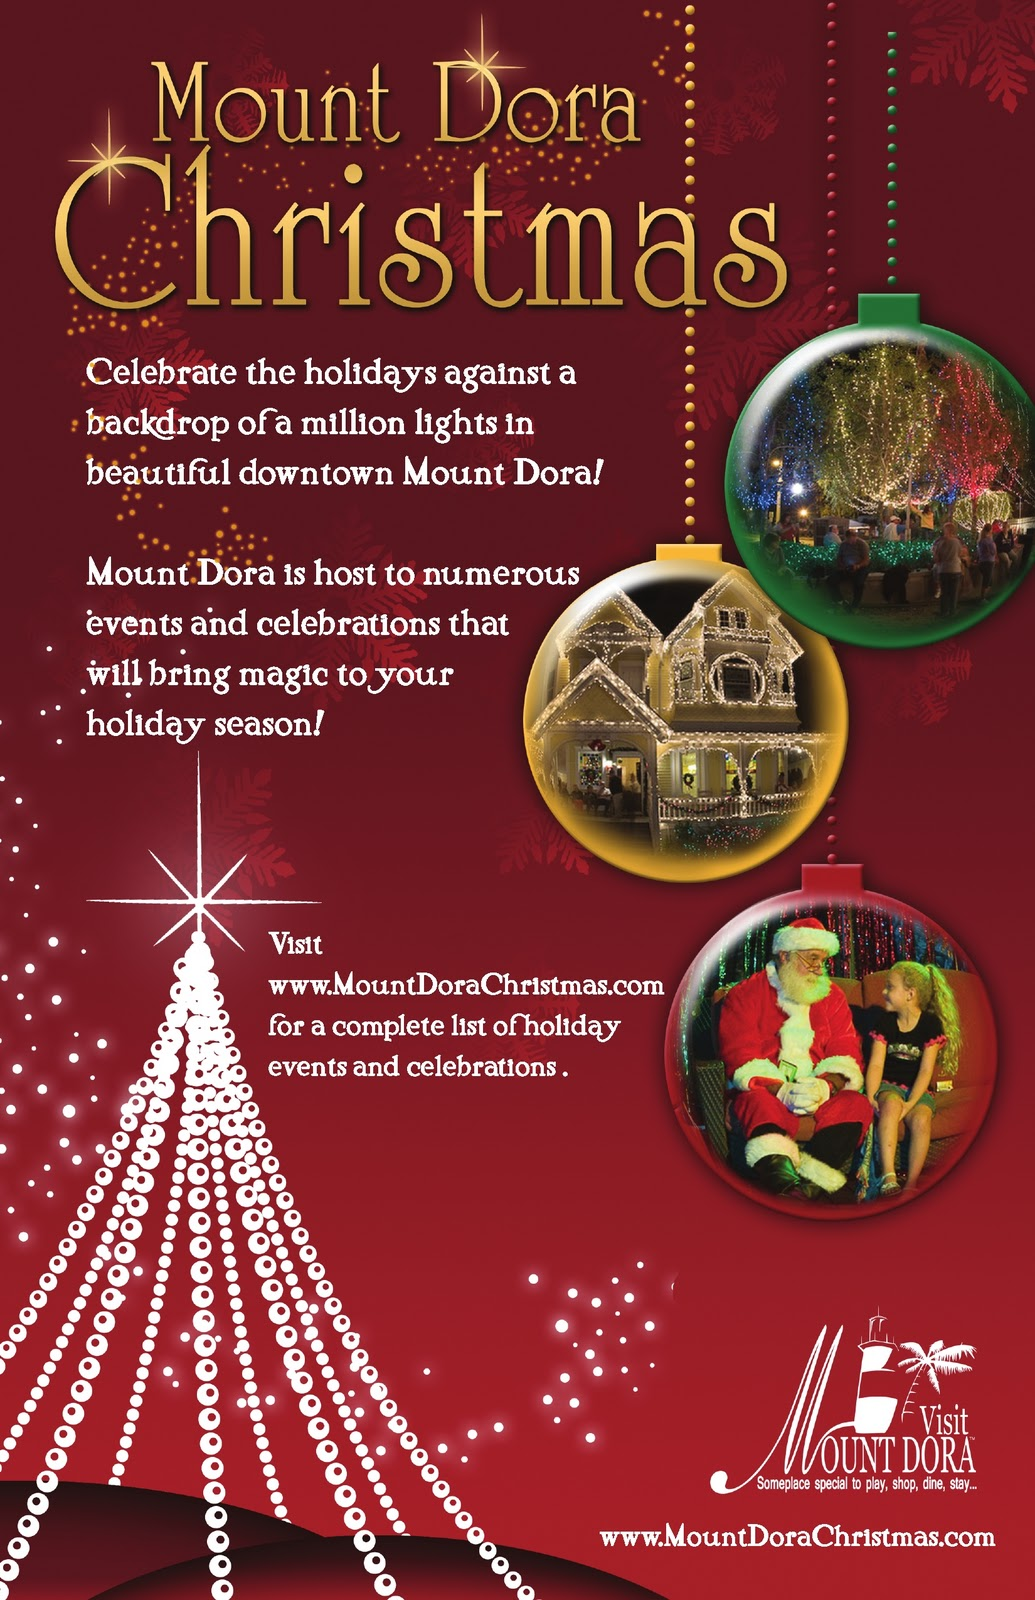 What To Do In Mount Dora: Celebrate a Mount Dora Christmas